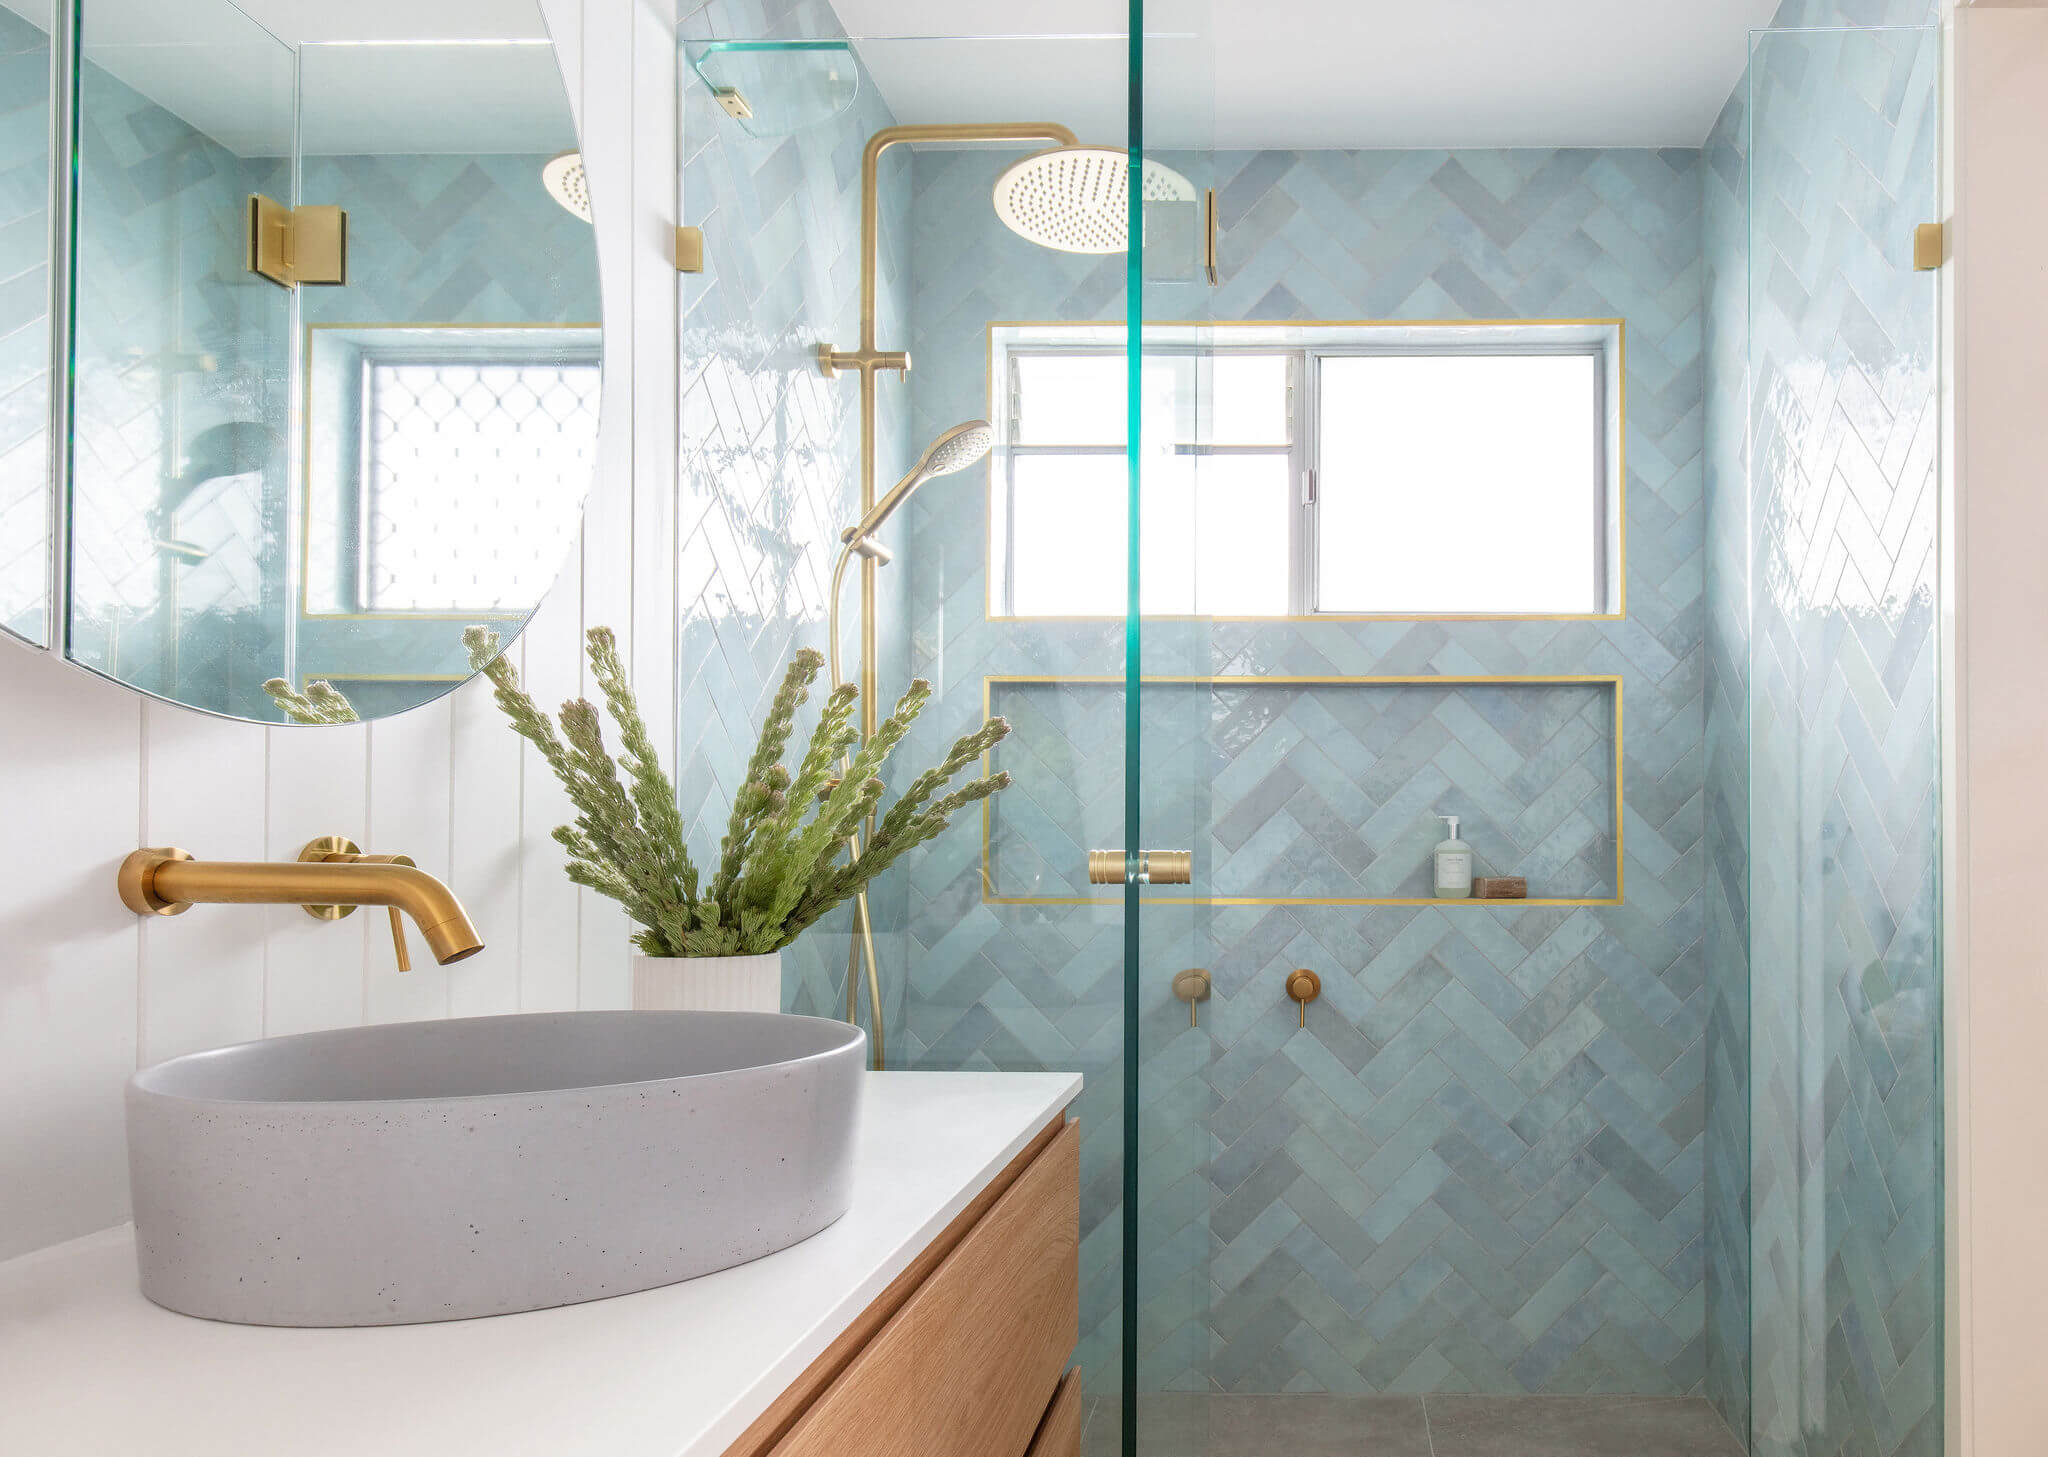 4 Tips To Locate The Right Contractor For Bathroom Renovations